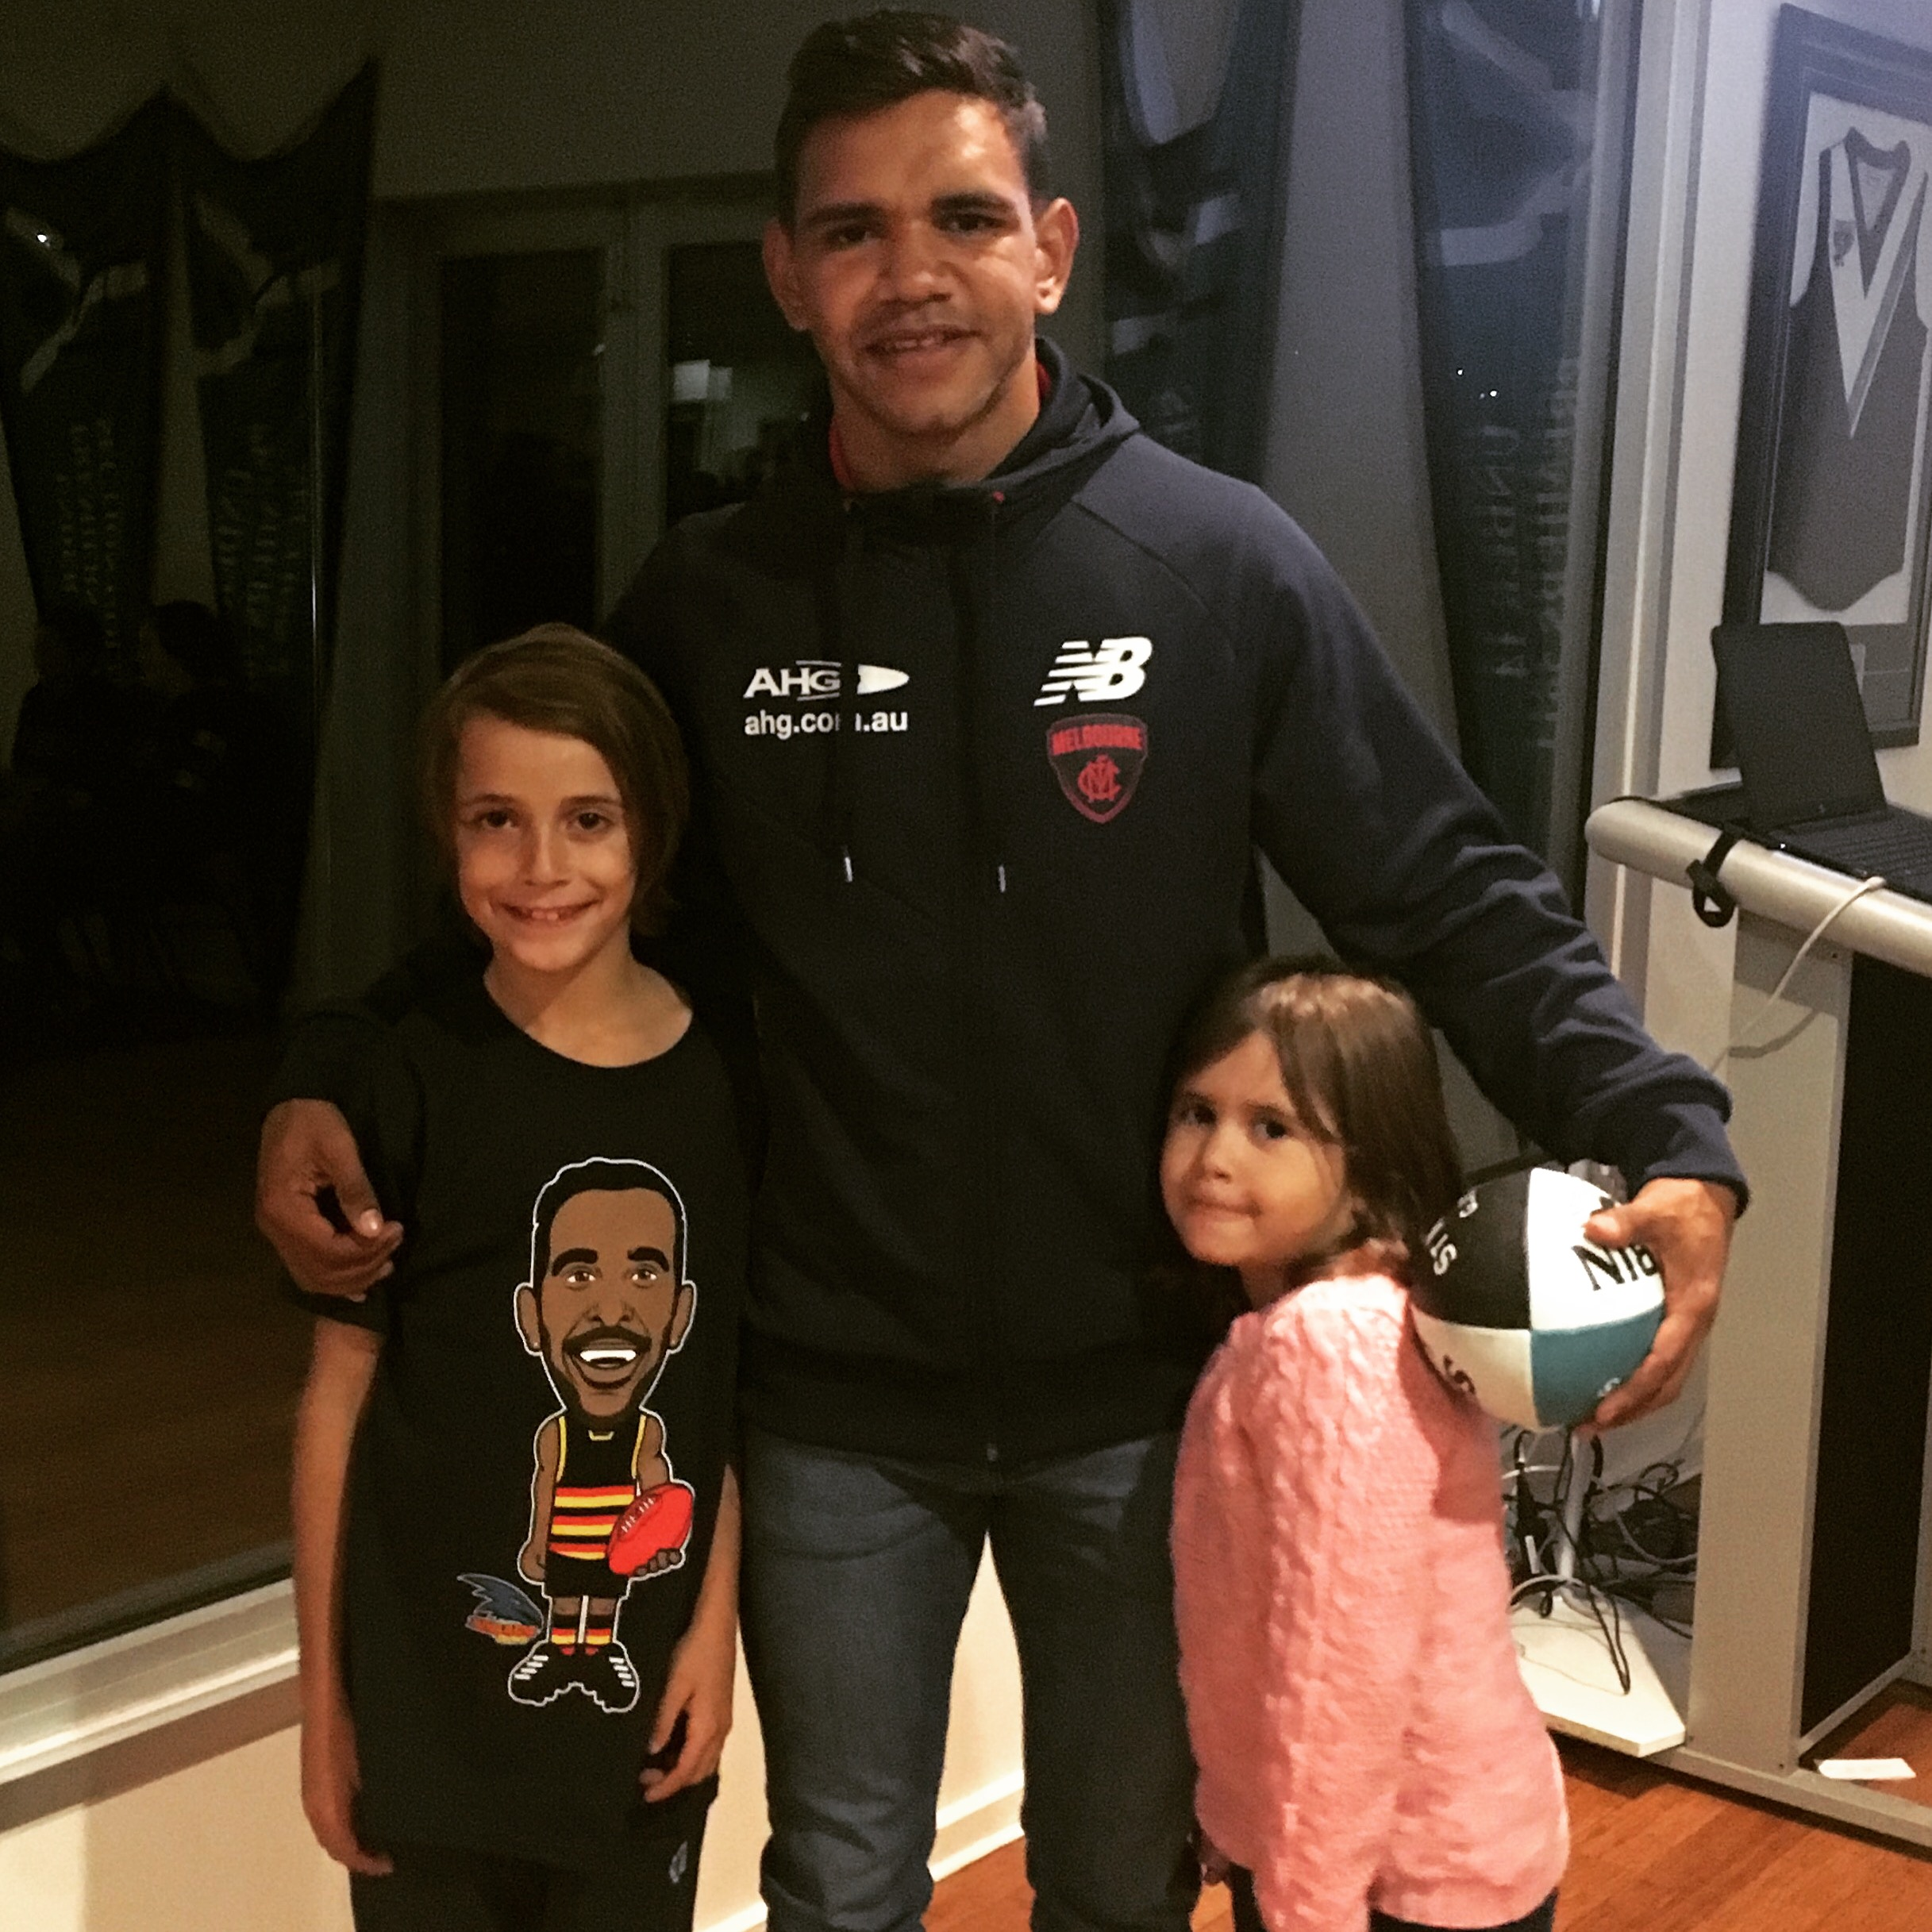 Neville Jetta with my son and his daughter at the St Mary's JFC Indigenous Round Club night.